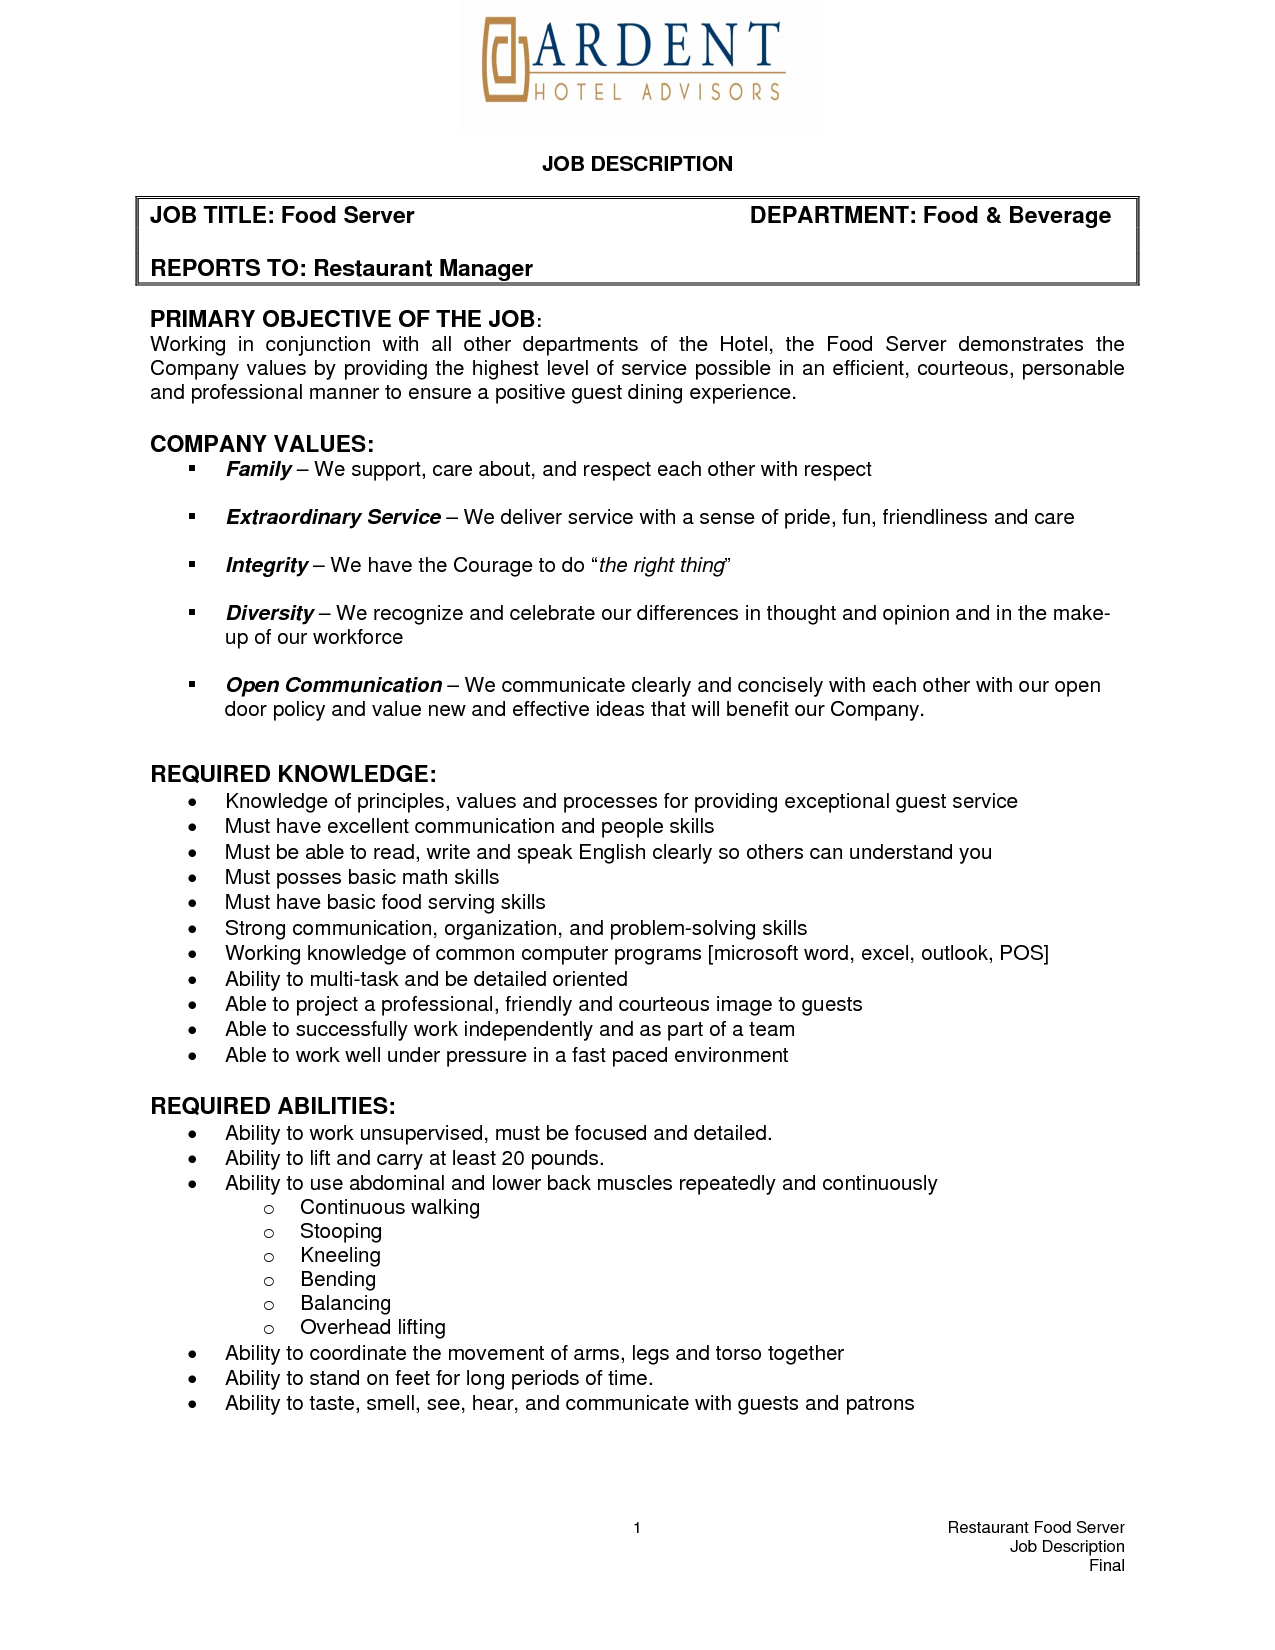 Resume Description For Waitress 8 Sle Resume Waitress Description Beautiful 2018 Pinterest